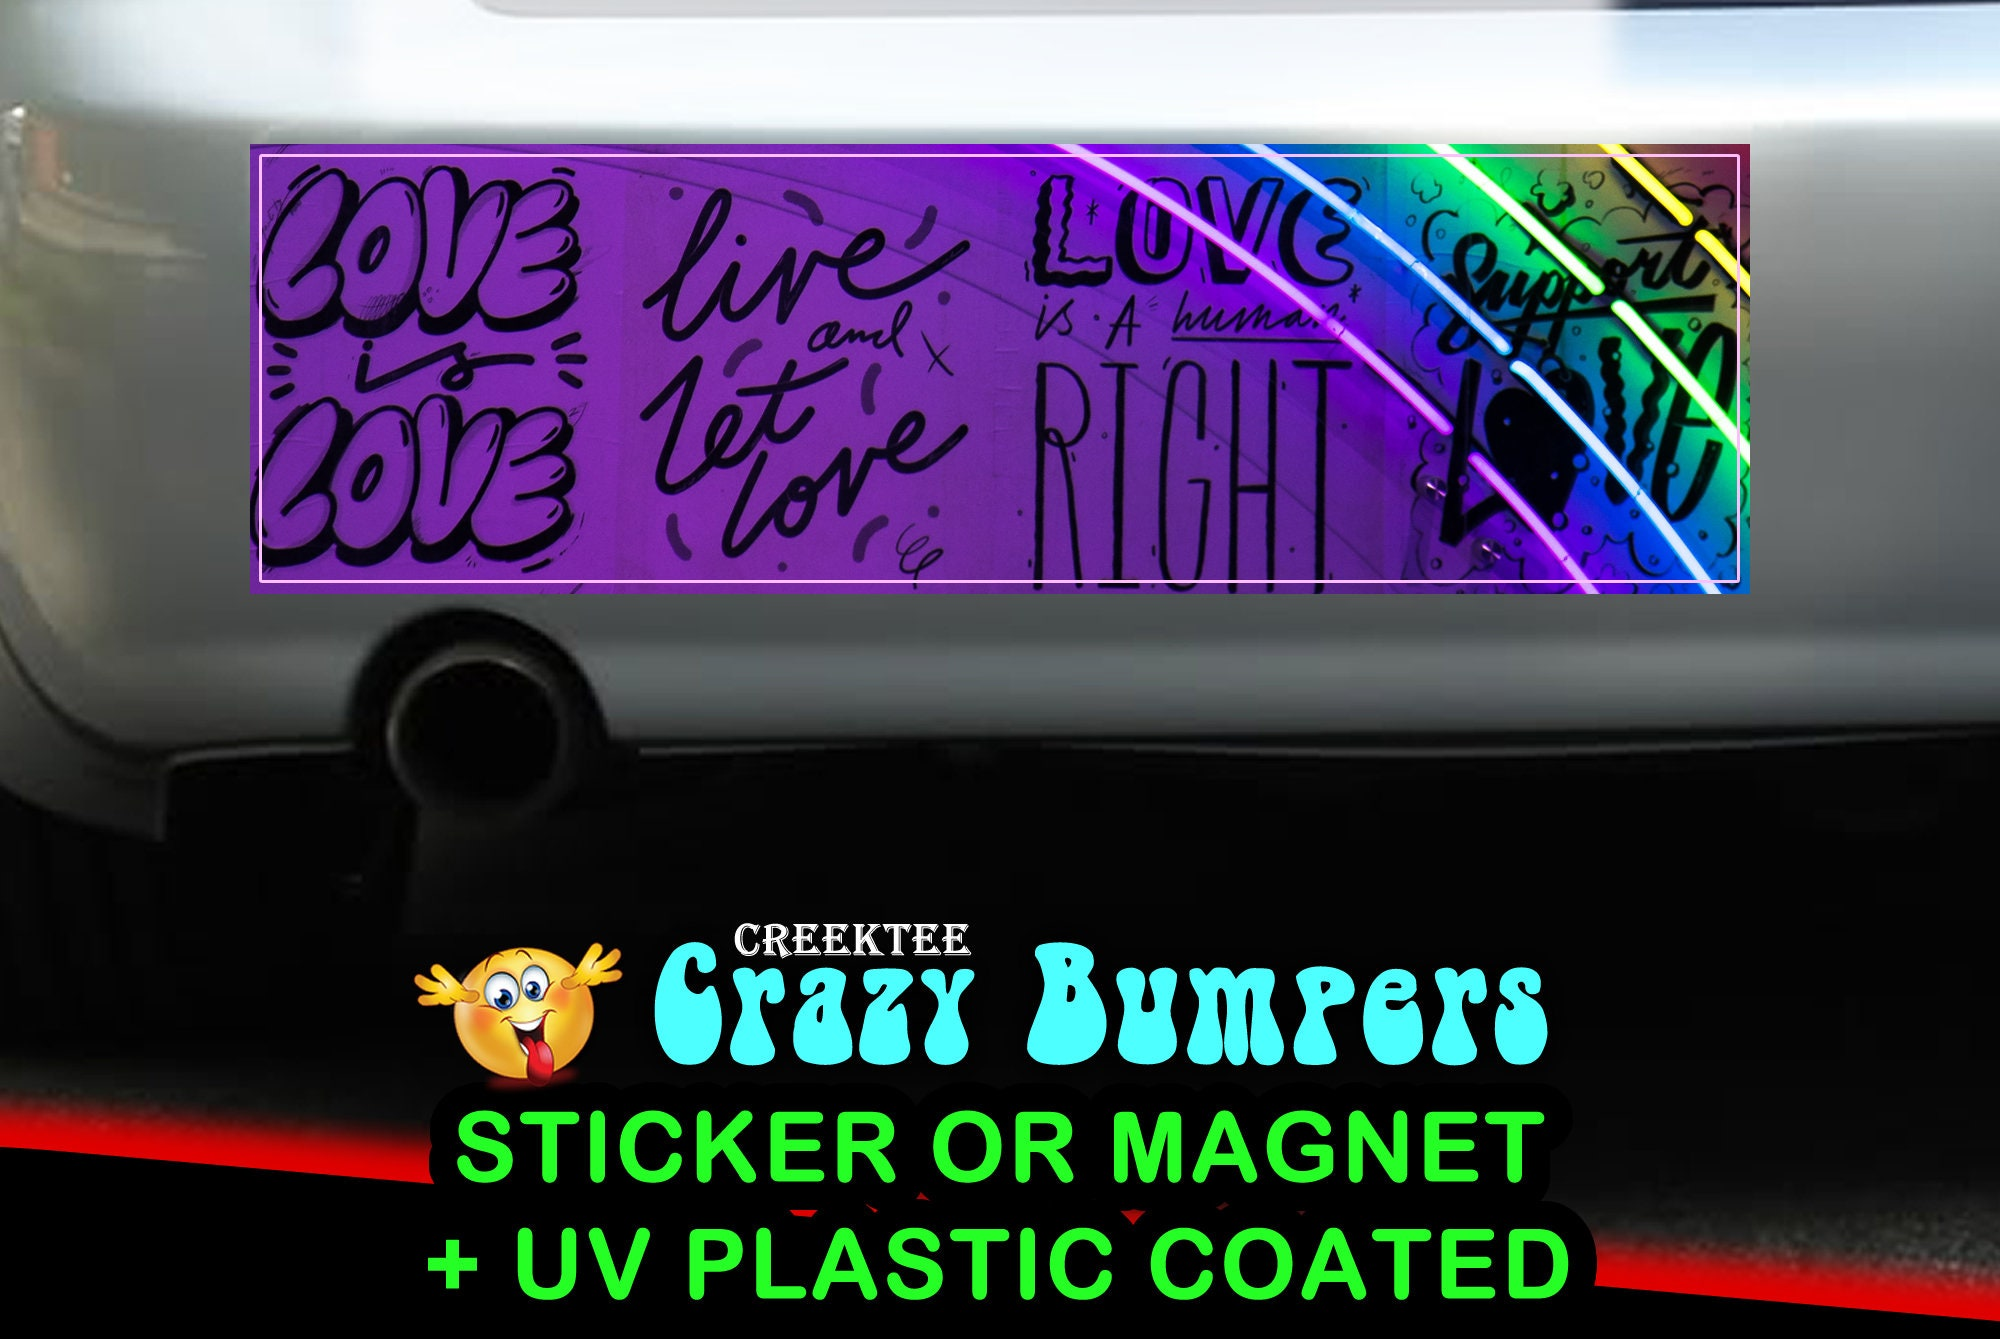 CAD$9.74 - Neon Rainbow Love 10 x 3 Bumper Sticker or Magnet - Custom changes and orders welcomed!